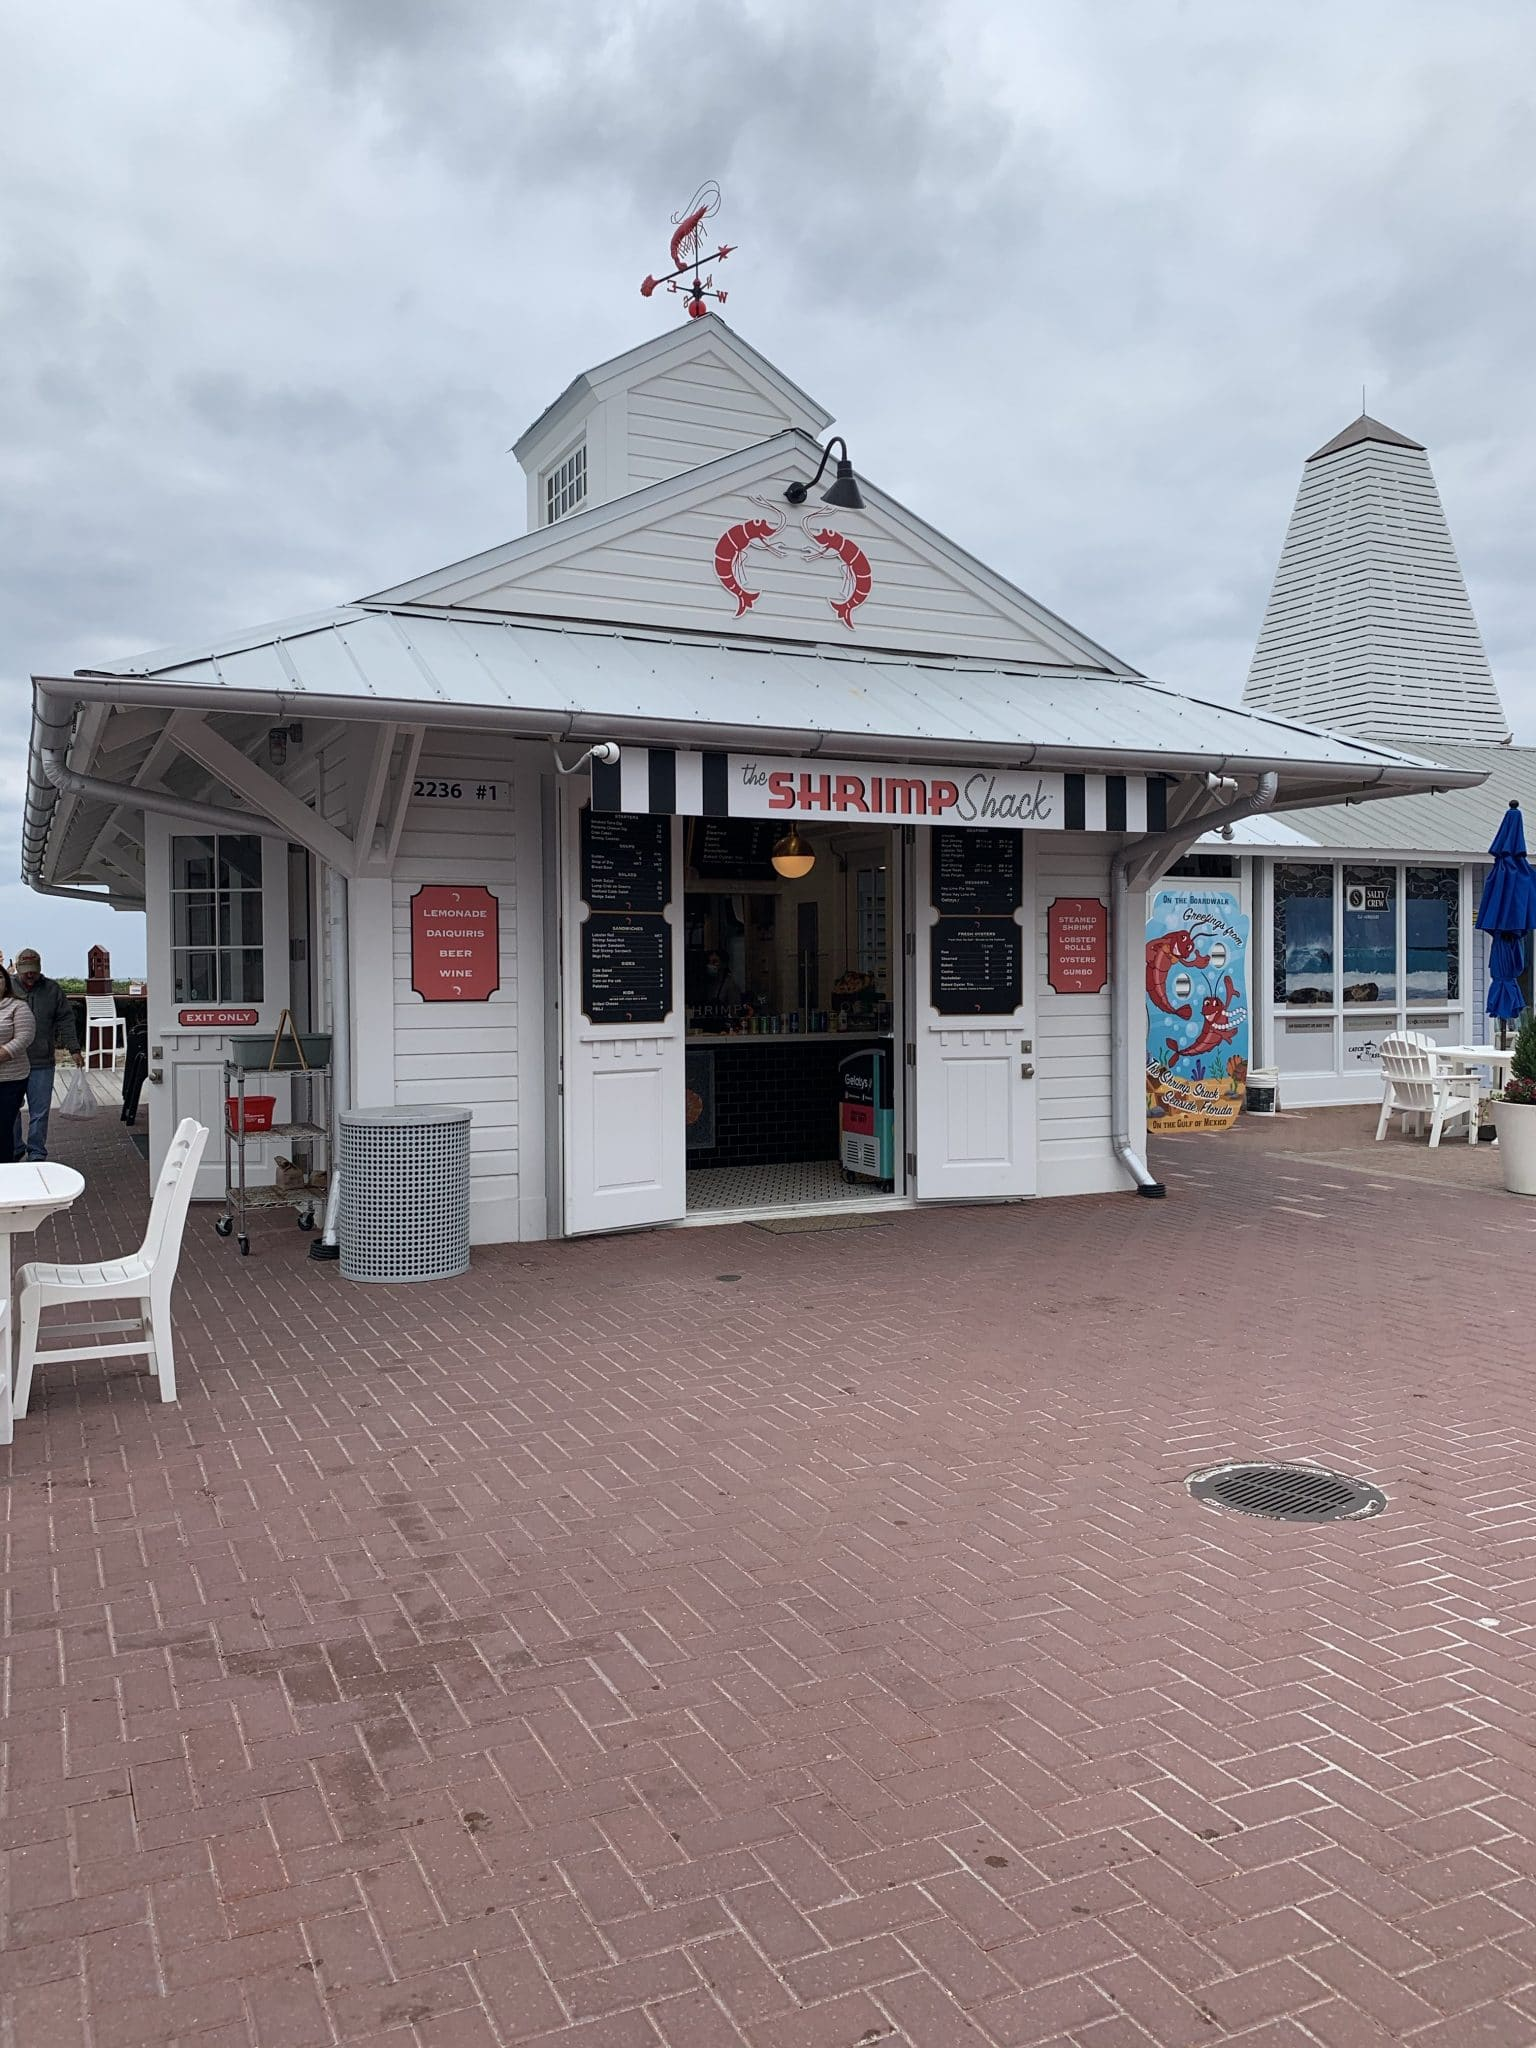 Shrimped Shack Seaside, 30A, Destin, Florida vacation 2021, Stilettos and Diapers